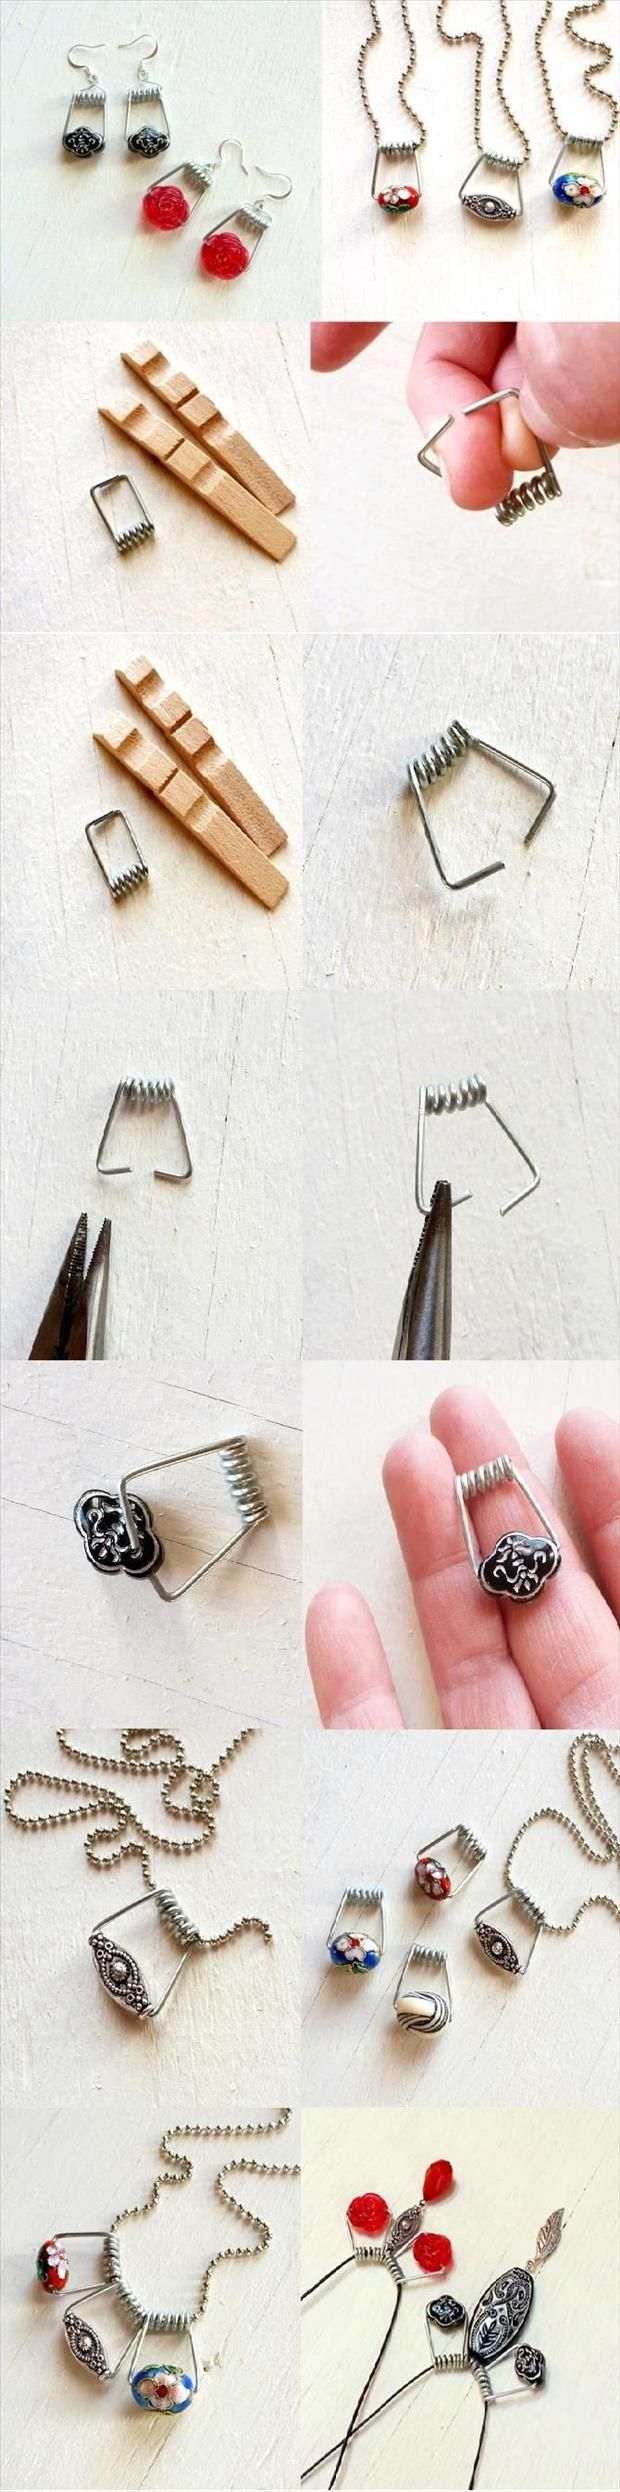 Do It Yourself Craft Ideas – 75 Pics #diy #jewelry #craft